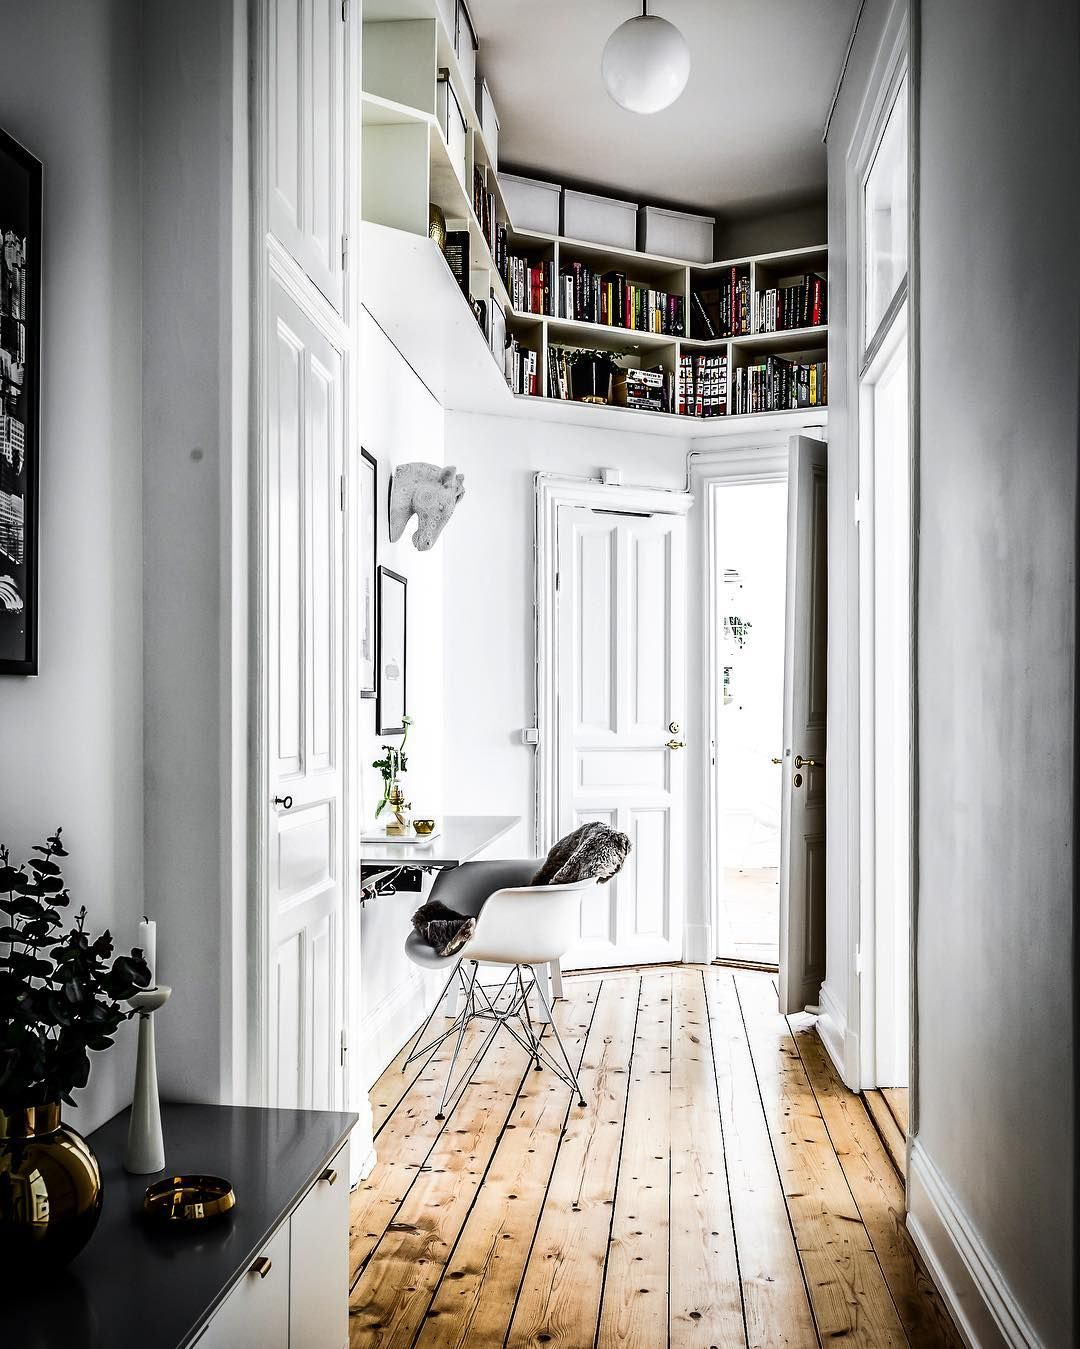 Home Interior Design Hallway Incorporates Book Cases And Uses Natural House Rooms Decor Design Interior